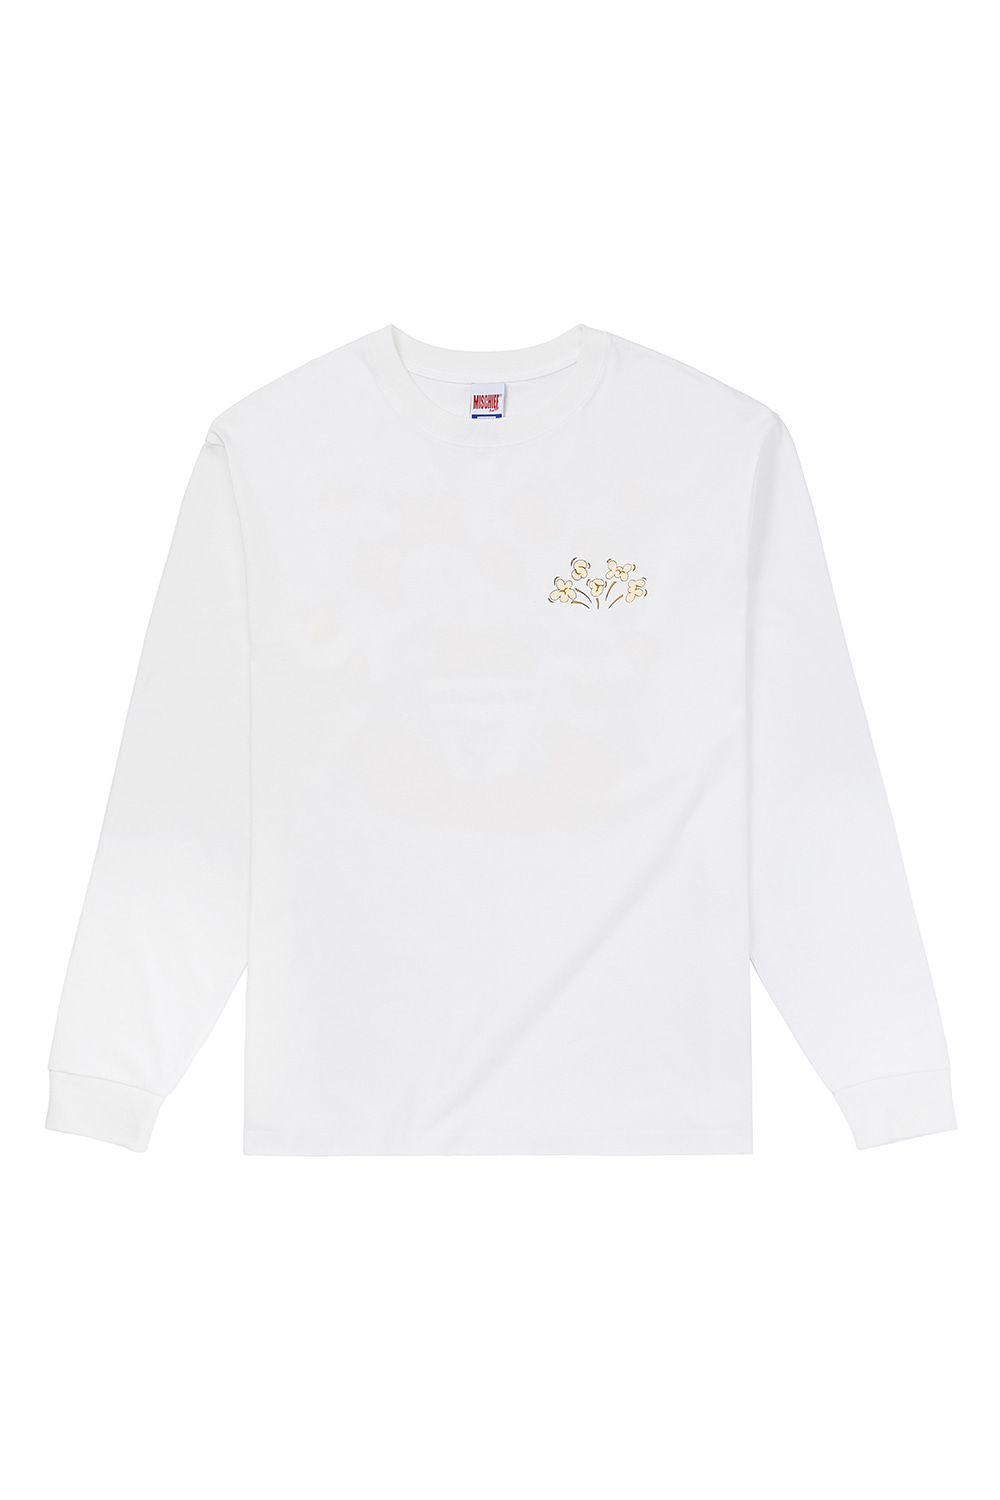 MSCHF_POPCORN LONG SLEEVE_white